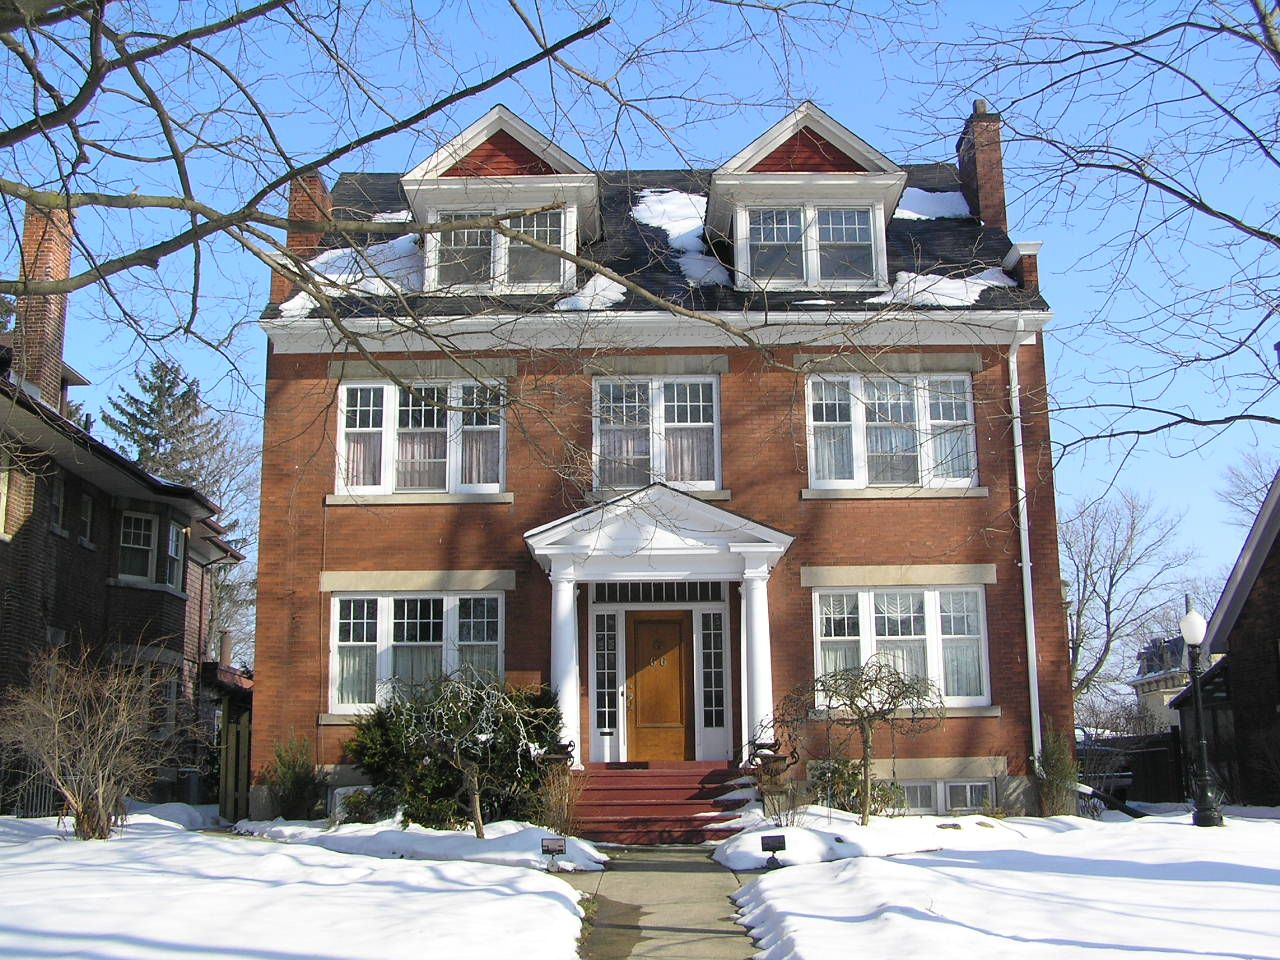 Two large dormers not aligned with windows home for Colonial home styles guide